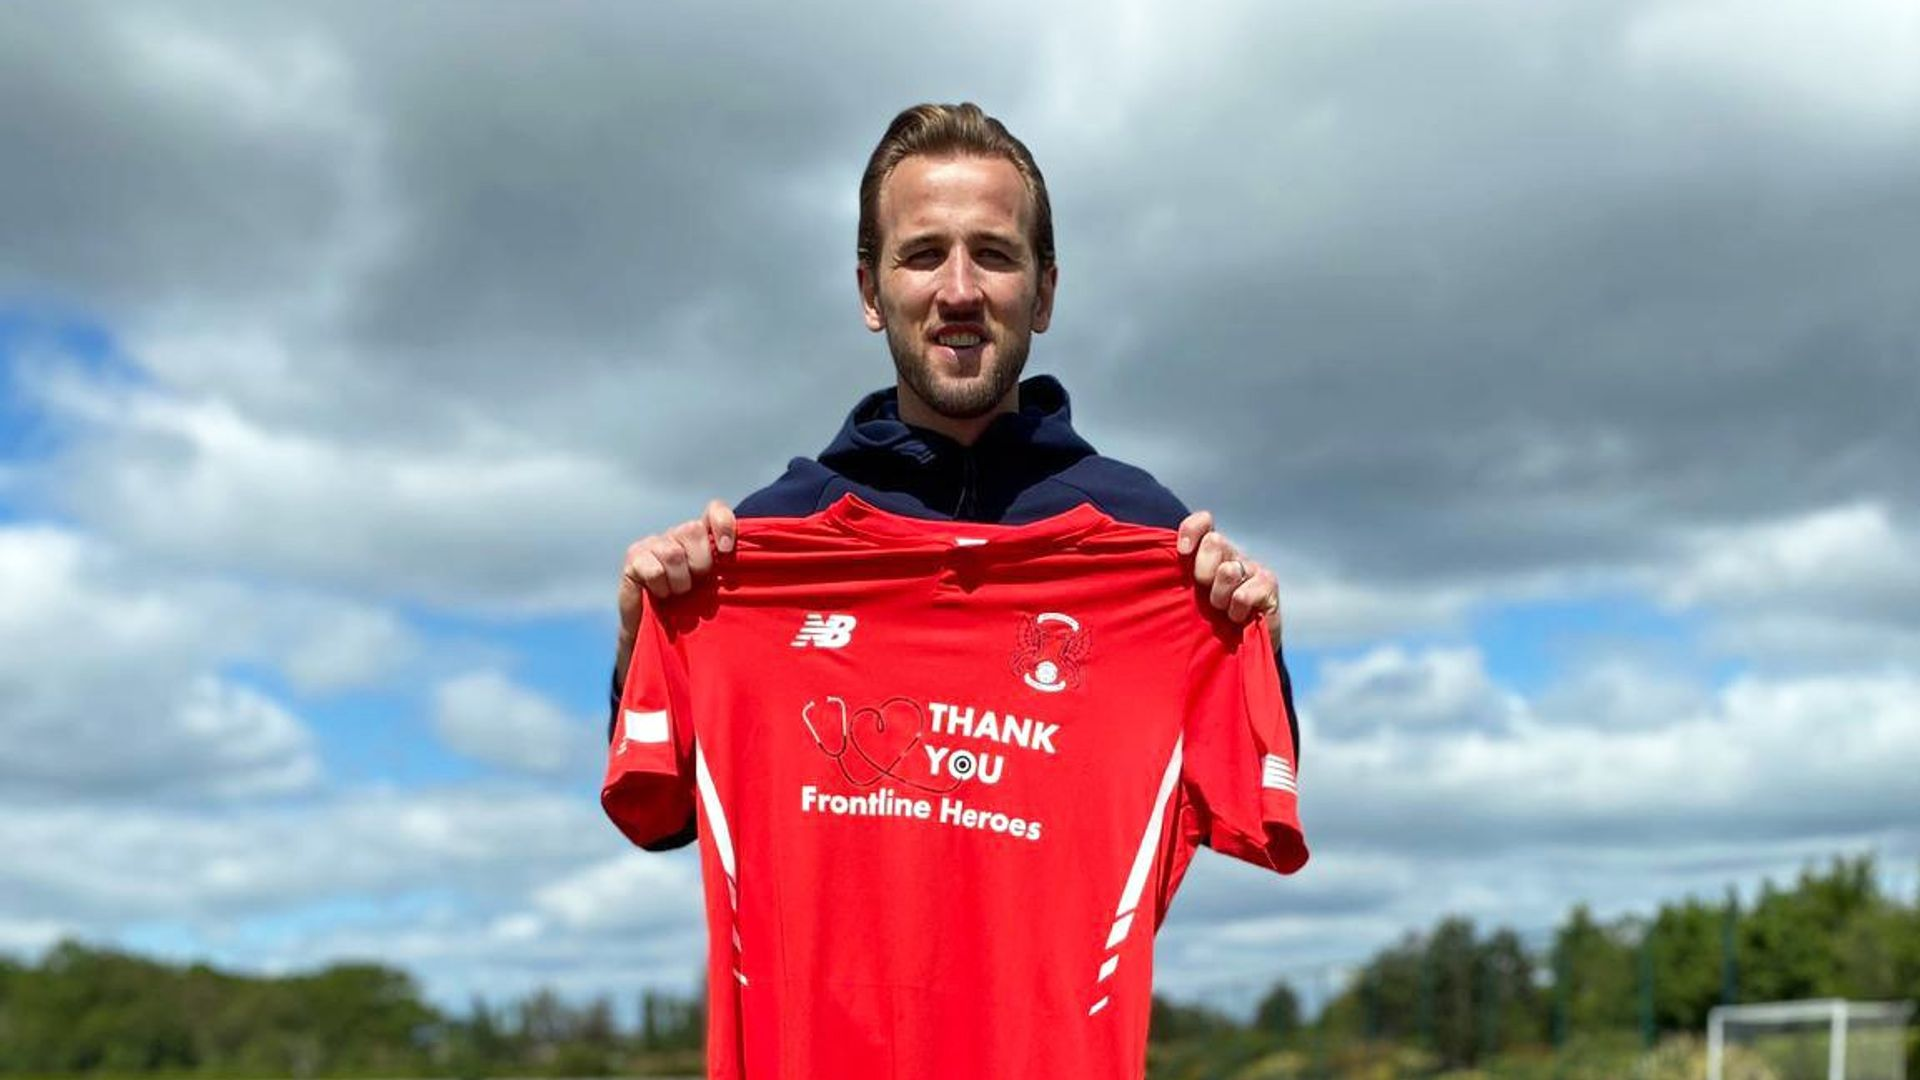 Kane to sponsor Orient shirts for charities